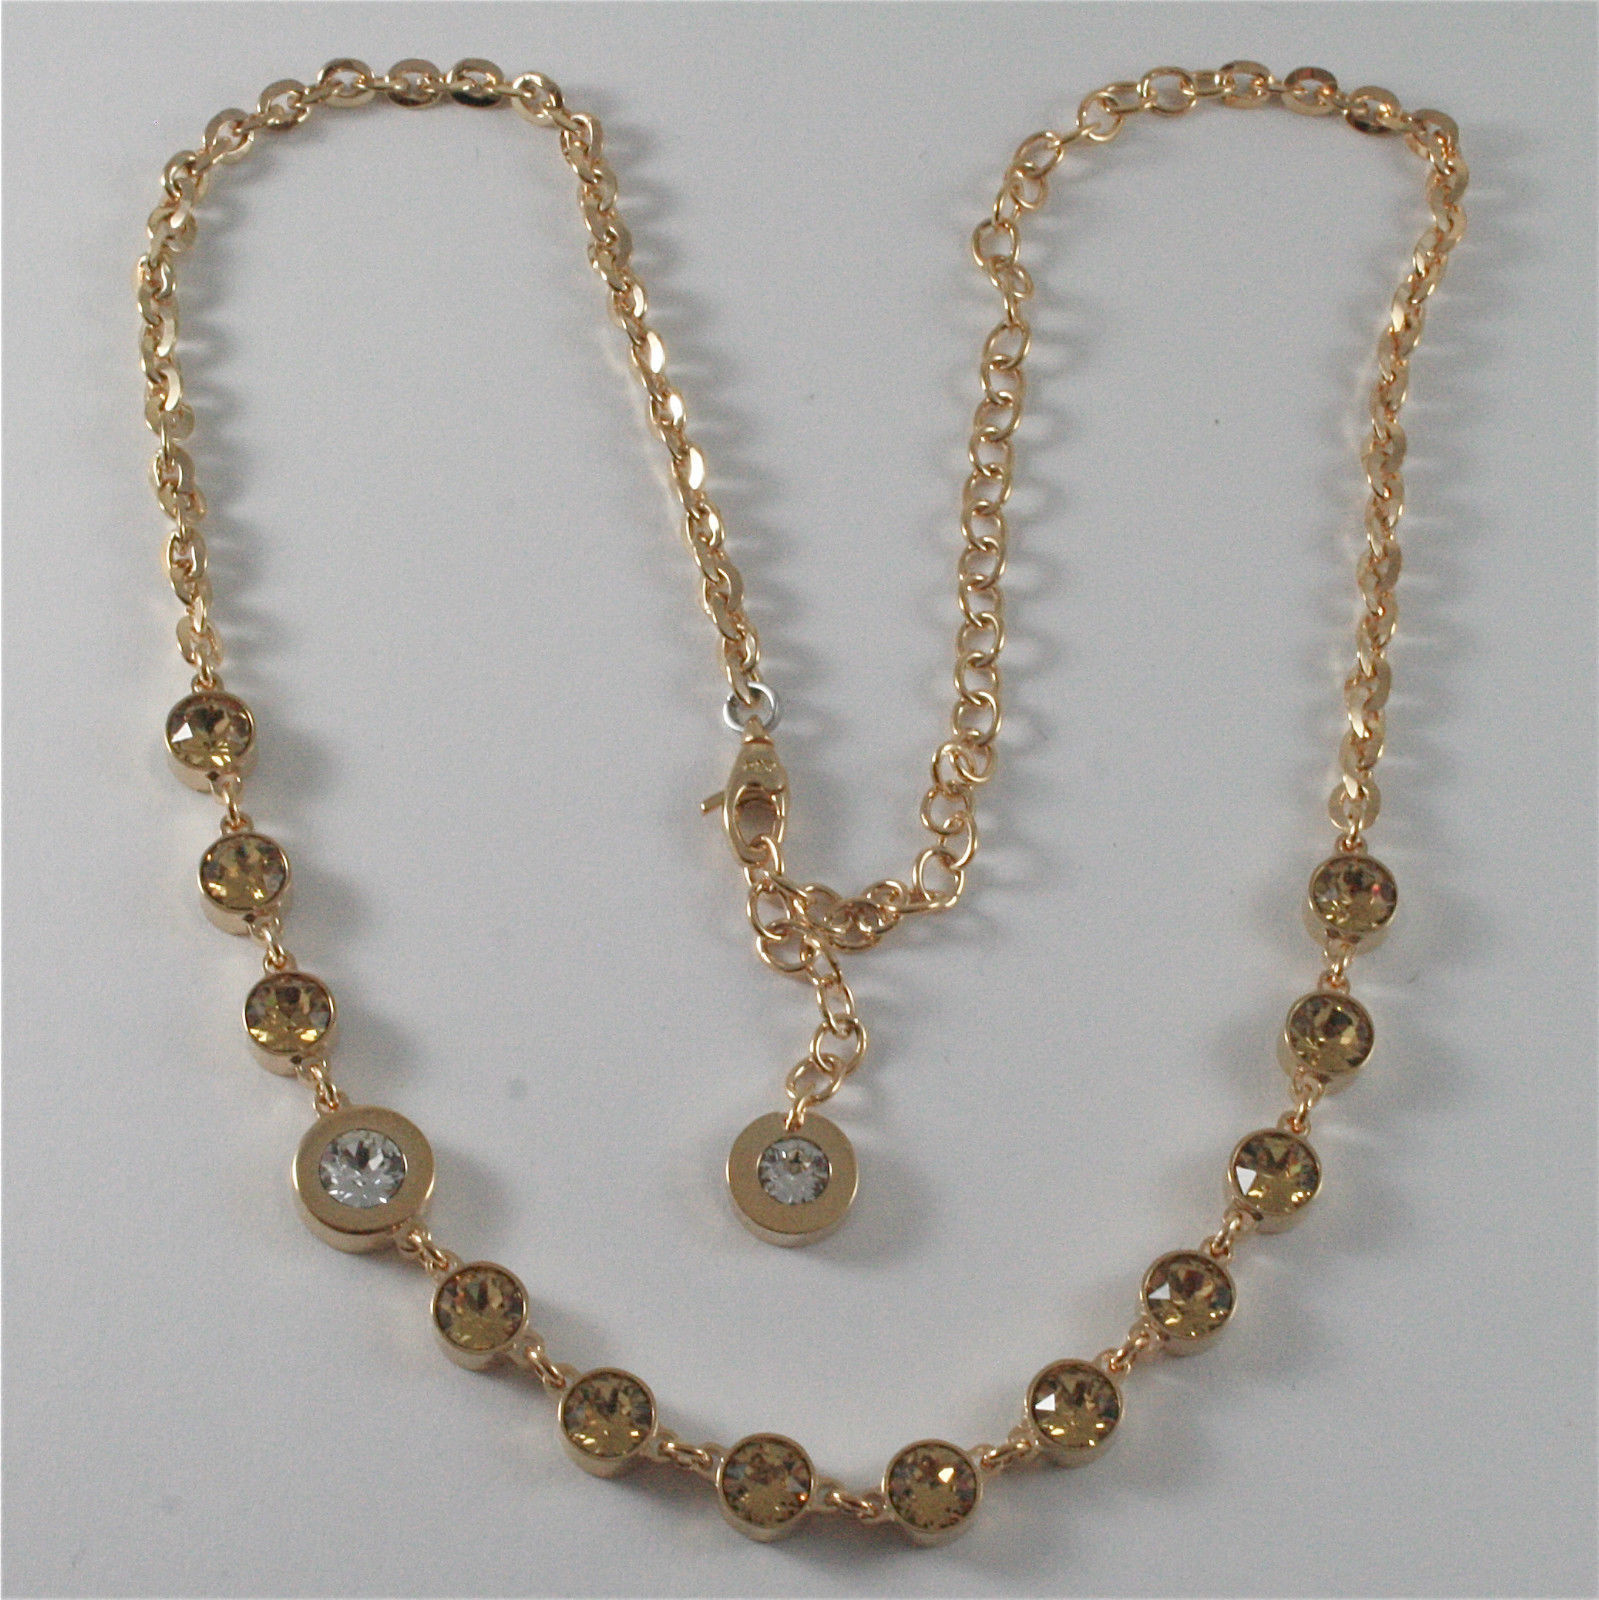 YELLOW GOLD PLATED BRONZE REBECCA TENNIS NECKLACE BPBKOC54 MADE IN ITALY 18.90